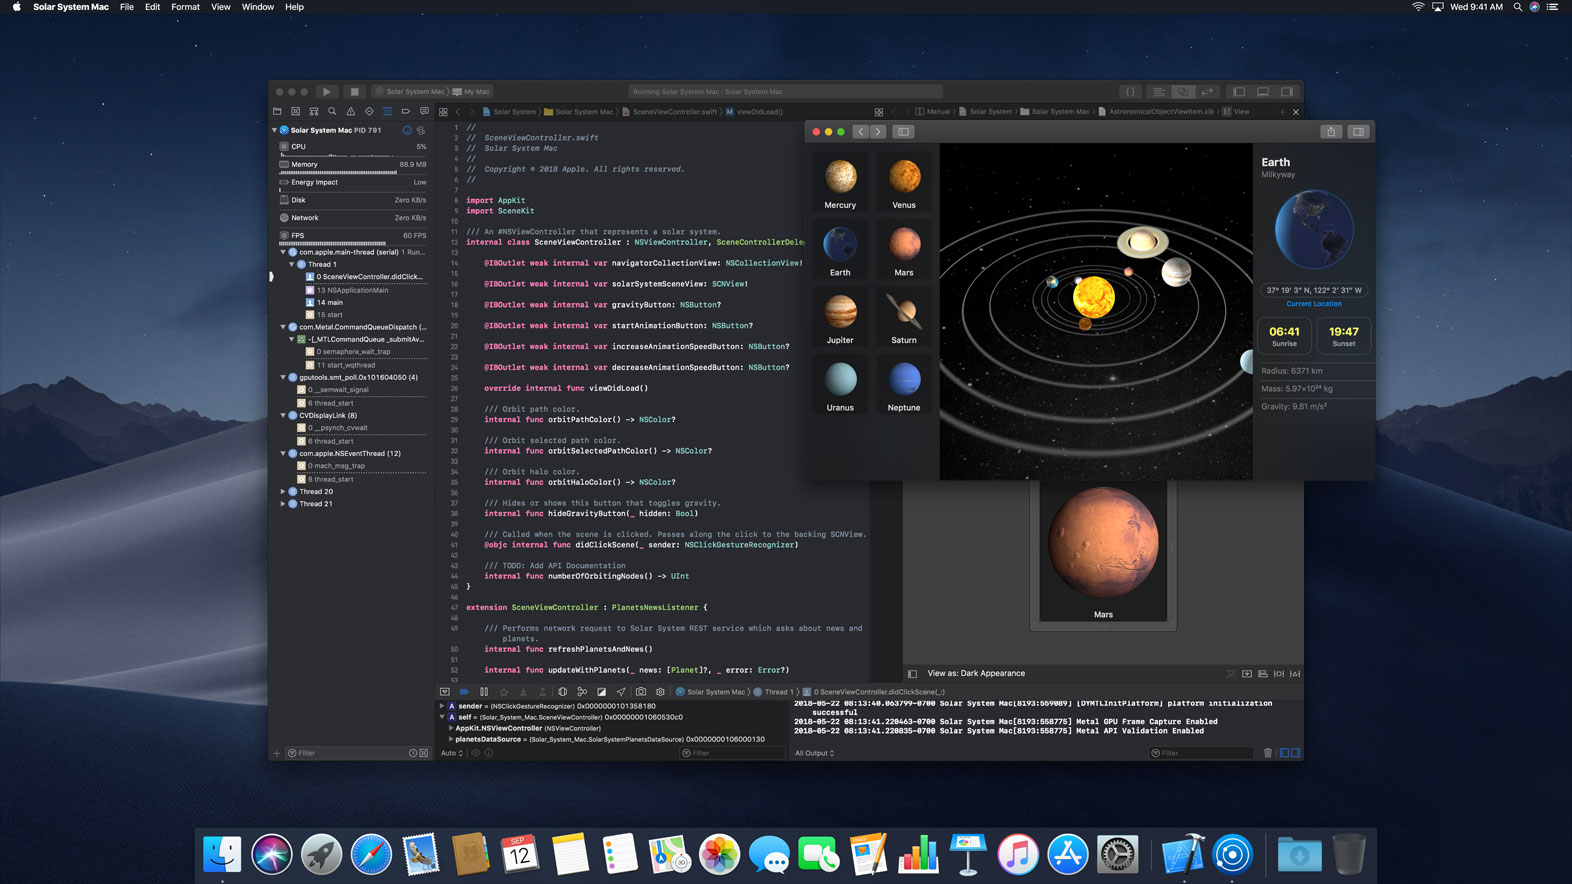 https://www.apple.com/nl/macos/mojave/overview/darkmode/gallery/xcode/image_large_2x.jpg